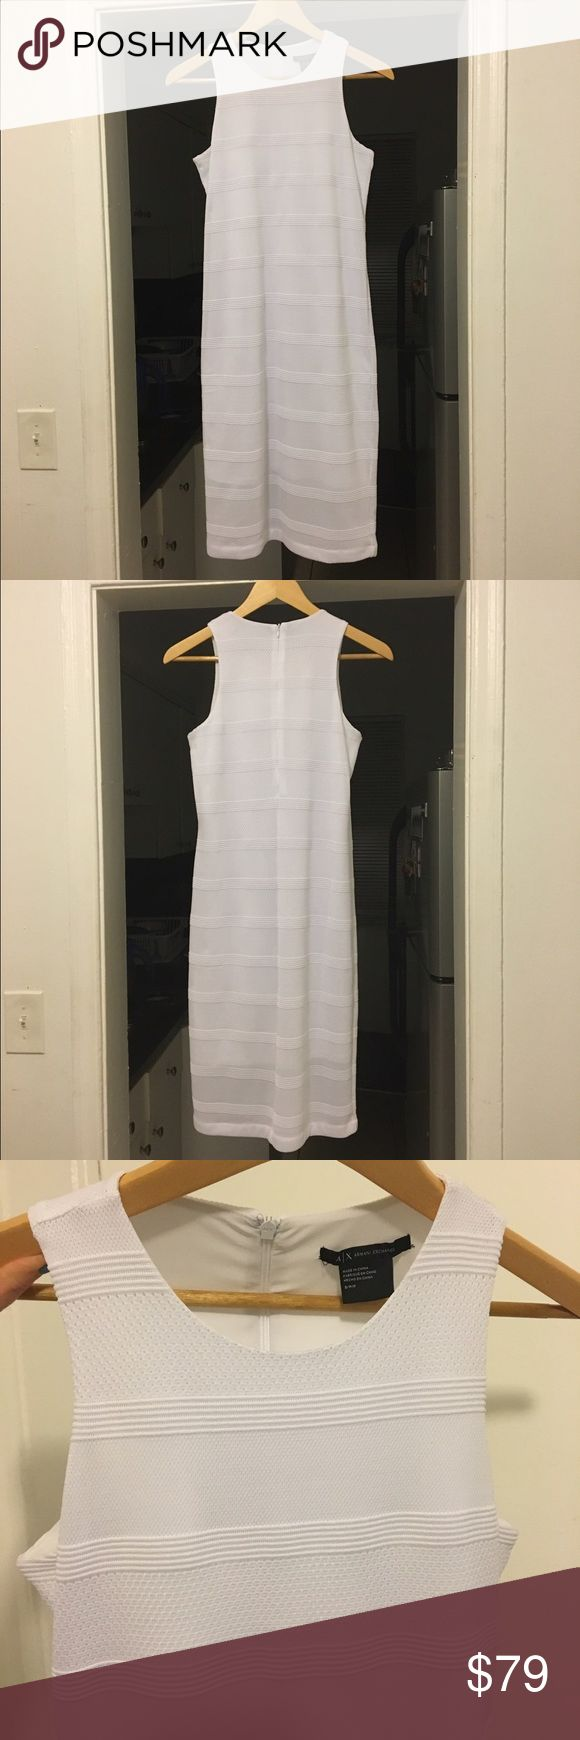 "NWOT White Armani Exchange sleeveless midi dress Brand: Armani Exchange. Style: textured midi bodycon sleeveless dress. Color: white. Size: S as per tag, but it is very stretchy material and it runs large, so will fit M/L size better. Measurements: lengths 40"", from armpit to armpit 16"", will fit up to 38-40 DDD. Zipper at the back all along spine line. Condition: NWOT. 🚫no trades, price is firm🚫 Armani Exchange Dresses Midi"